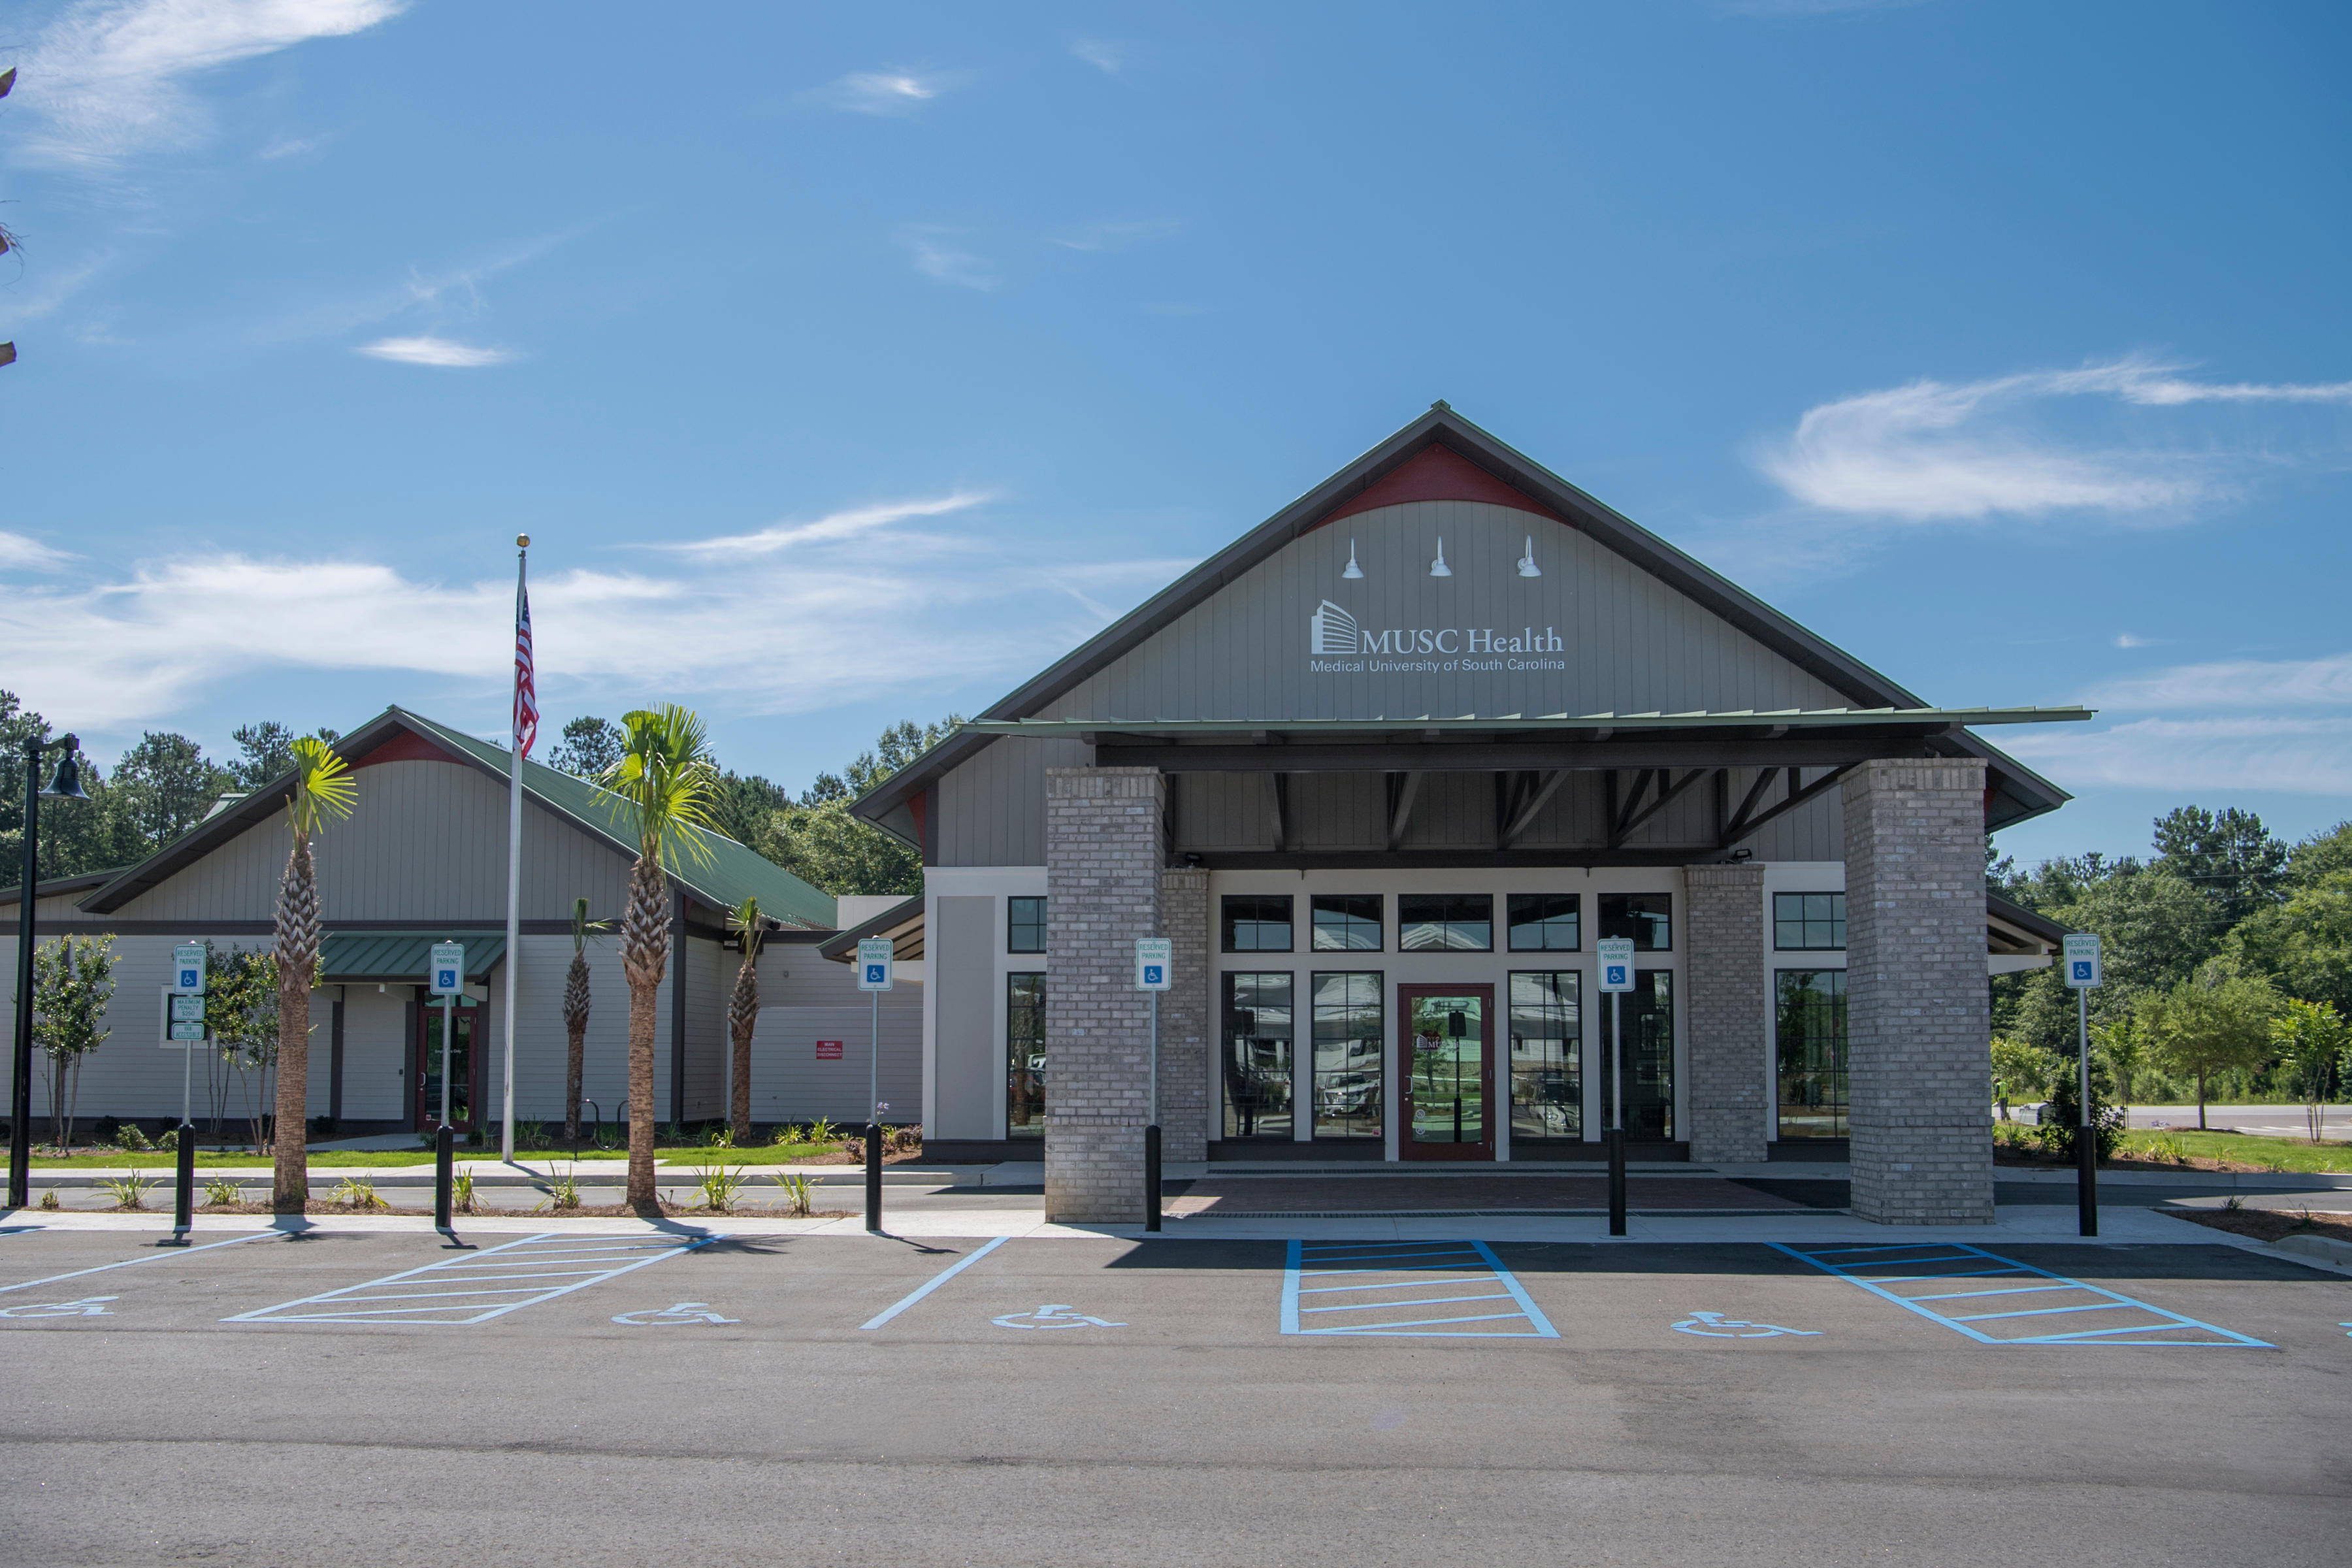 MUSC Health Primary Care - Carnes Crossroads 2000 1st Ave